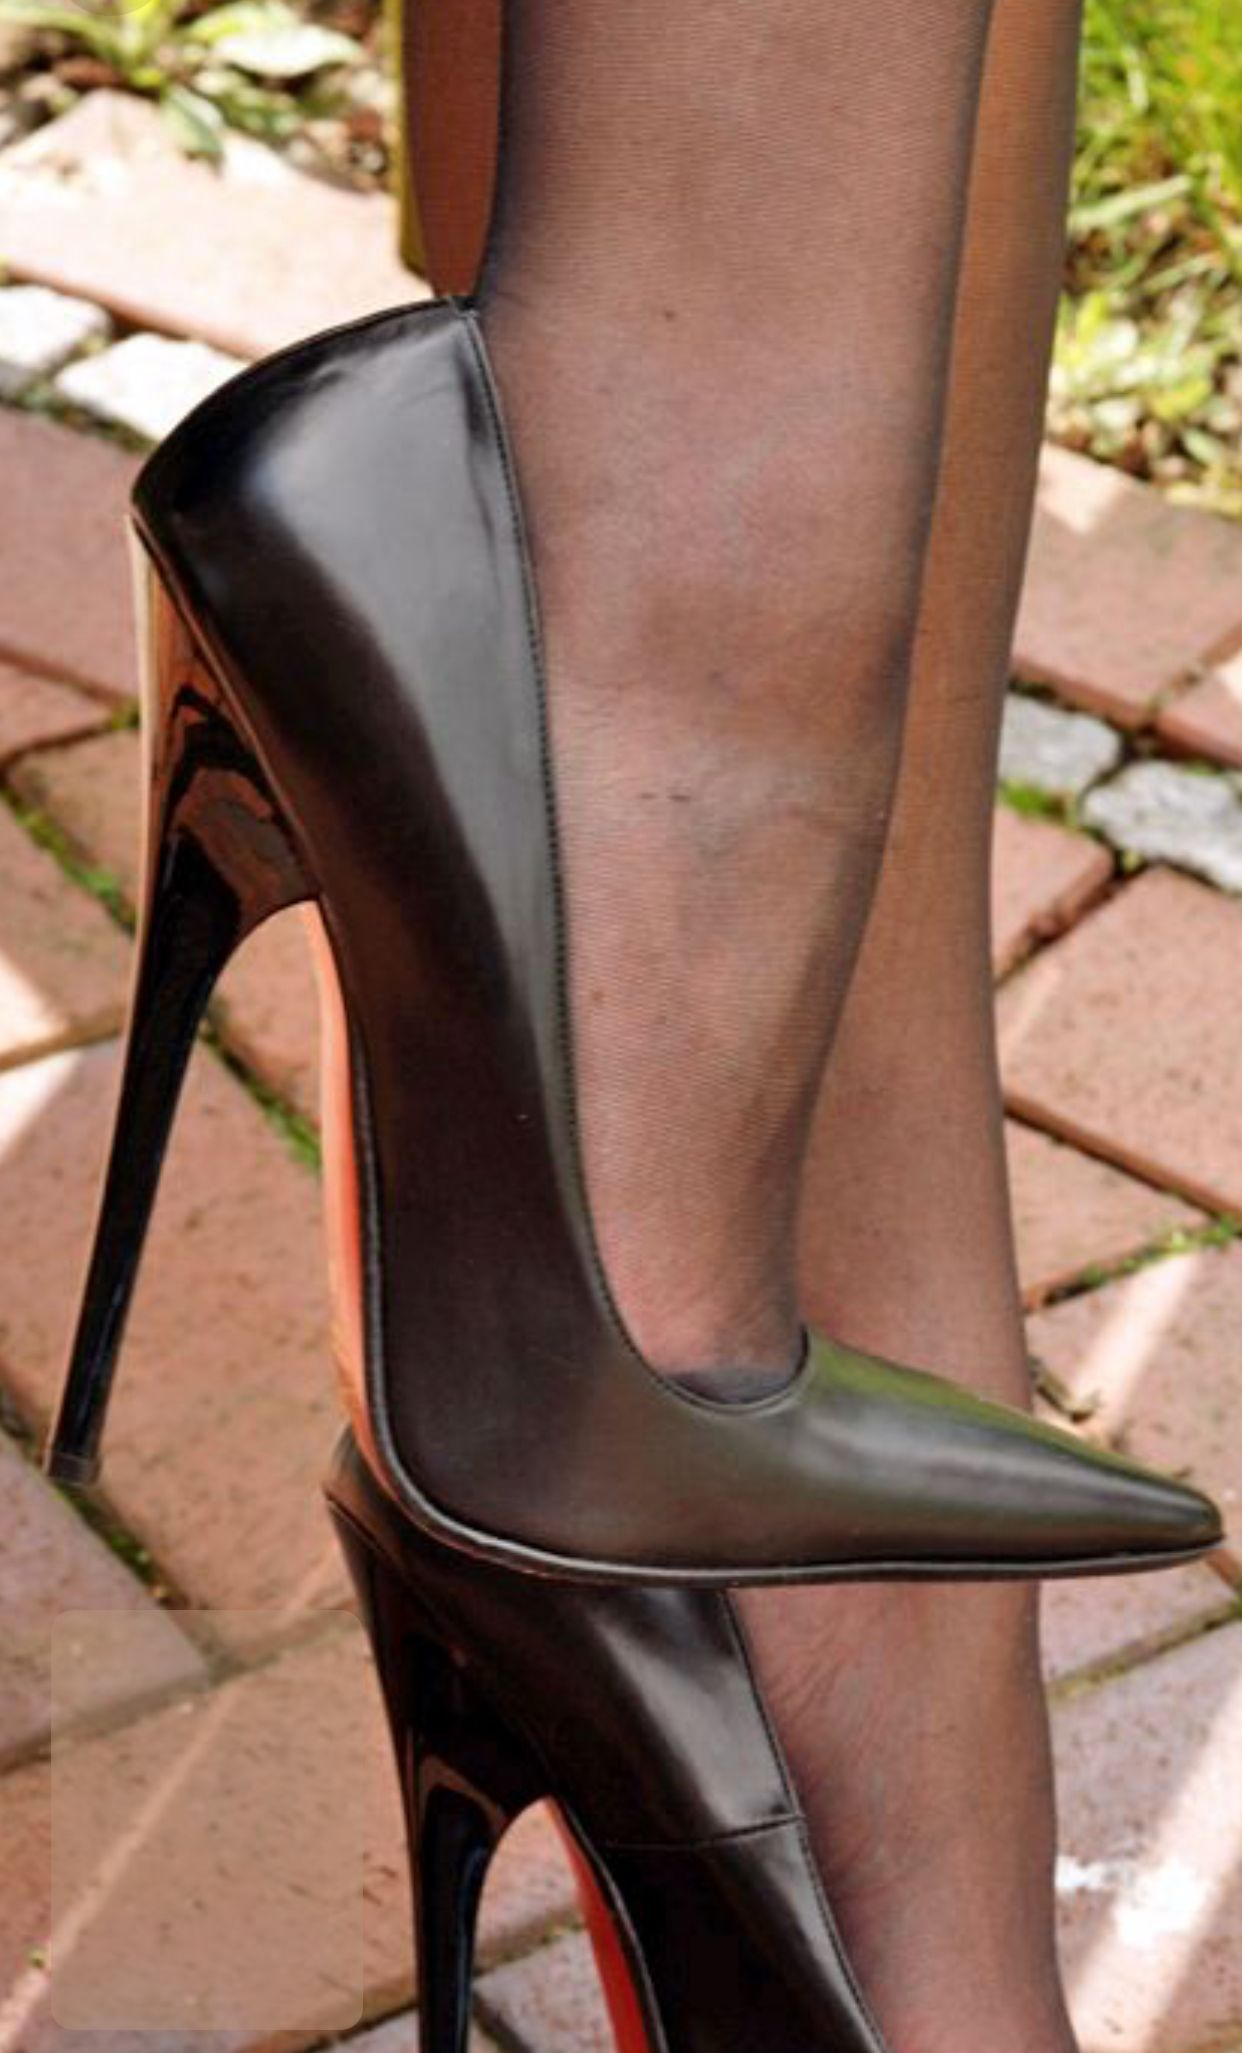 Pin by Michael Andres on Schuhe (With images) | Stiletto